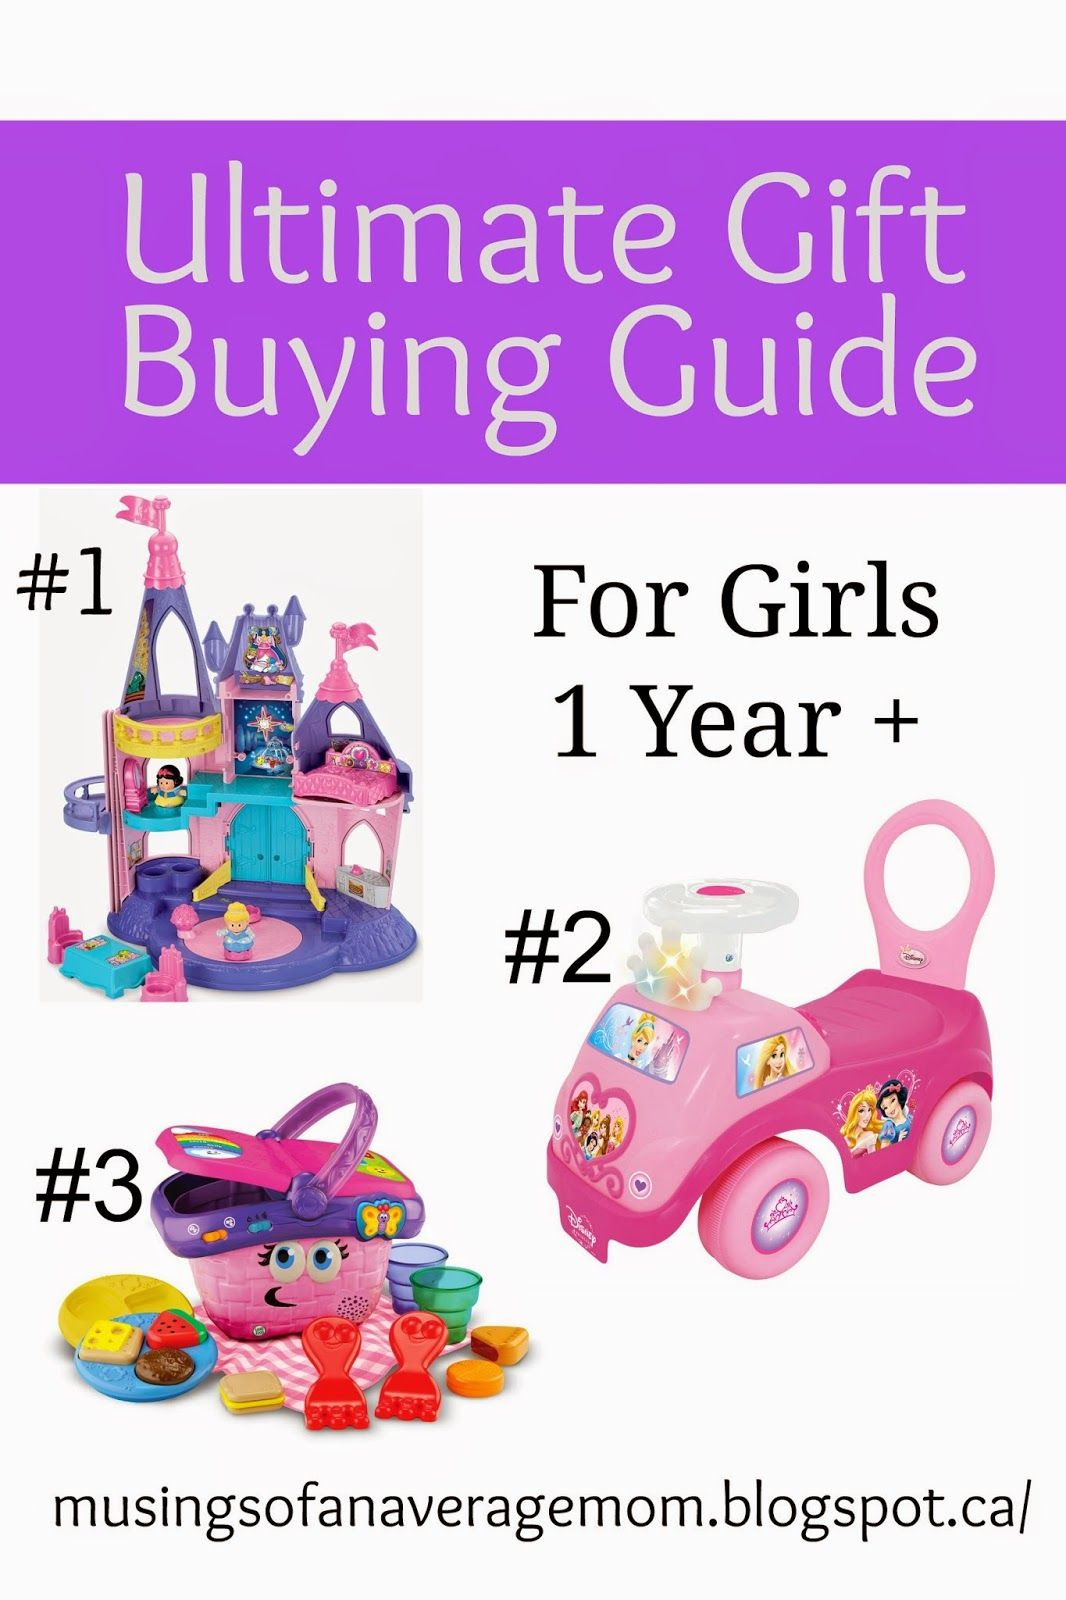 Ultimate Gift Buying Guide Great Ideas For One Year Old Girls